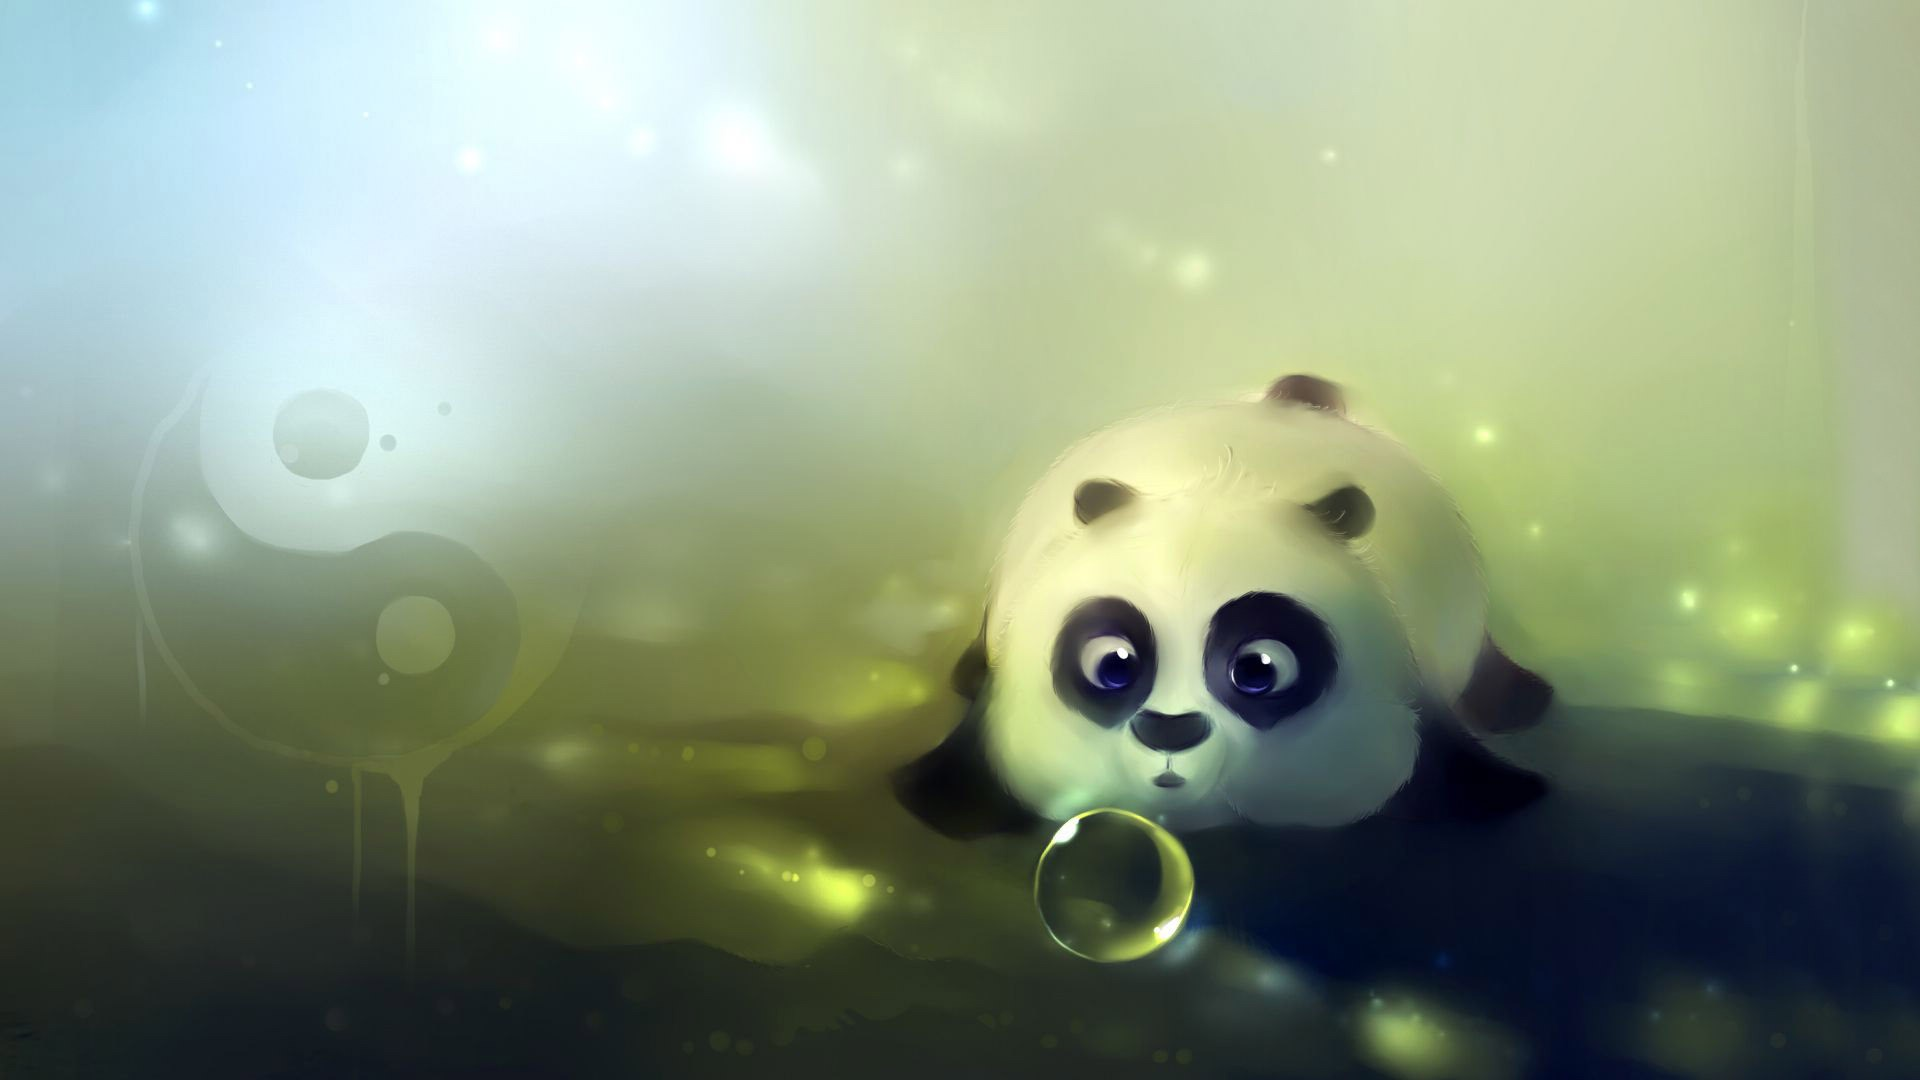 Cool Wallpaper Macbook Panda - 56195-panda-wallpaper-1920x1080-notebook  Pictures_808097.jpg